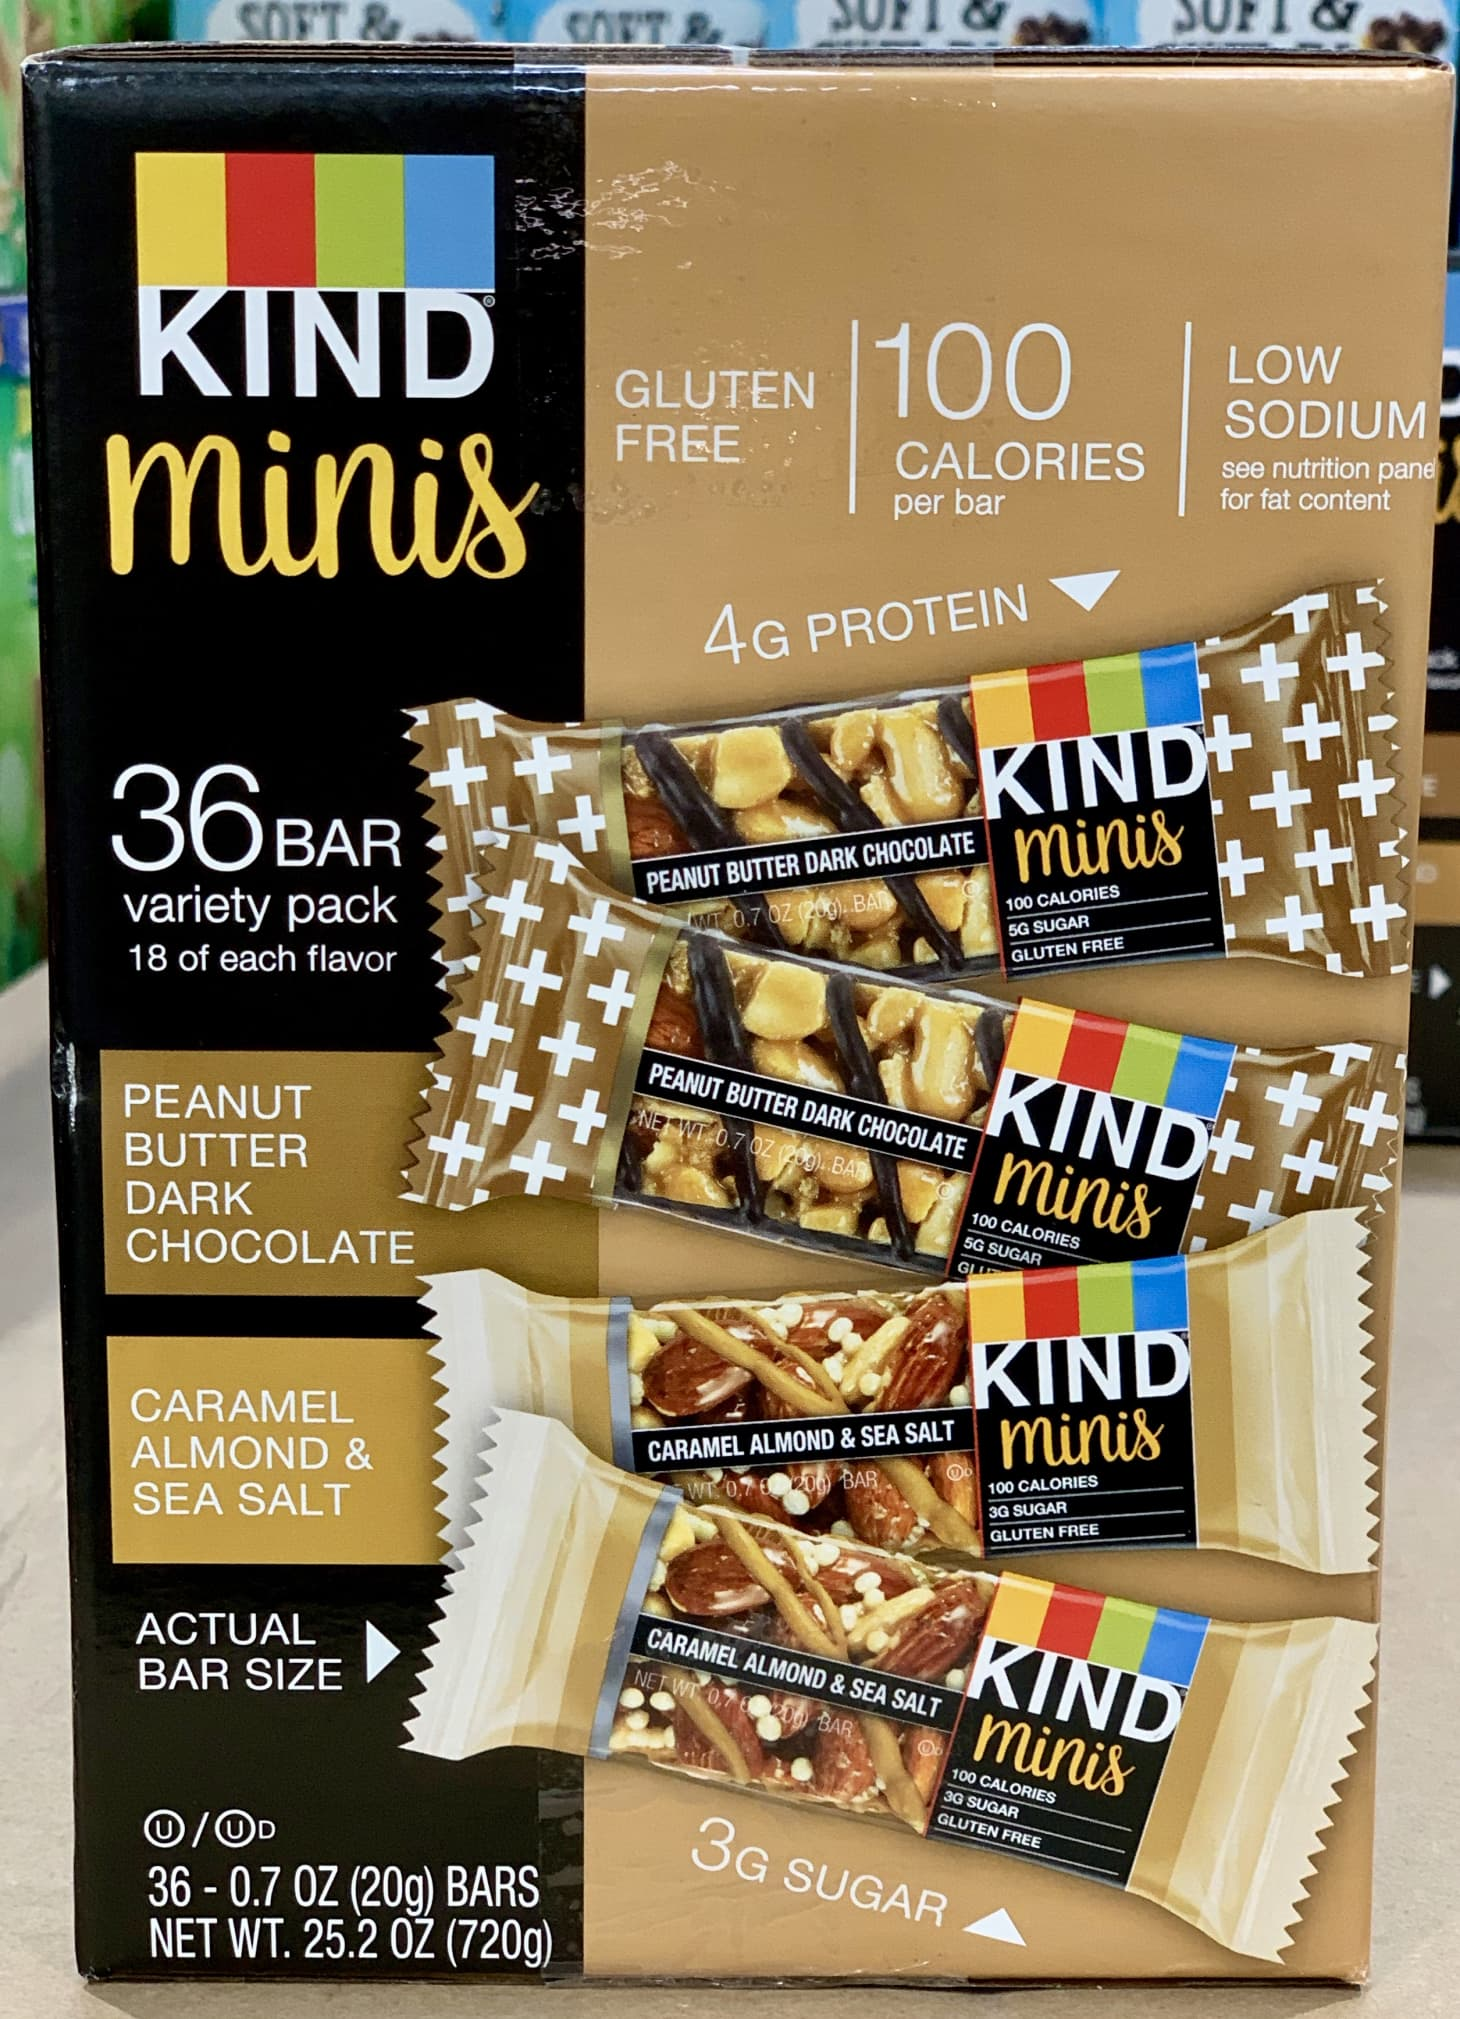 Healthy Costco Snacks To Eat on the Go | Kitchn